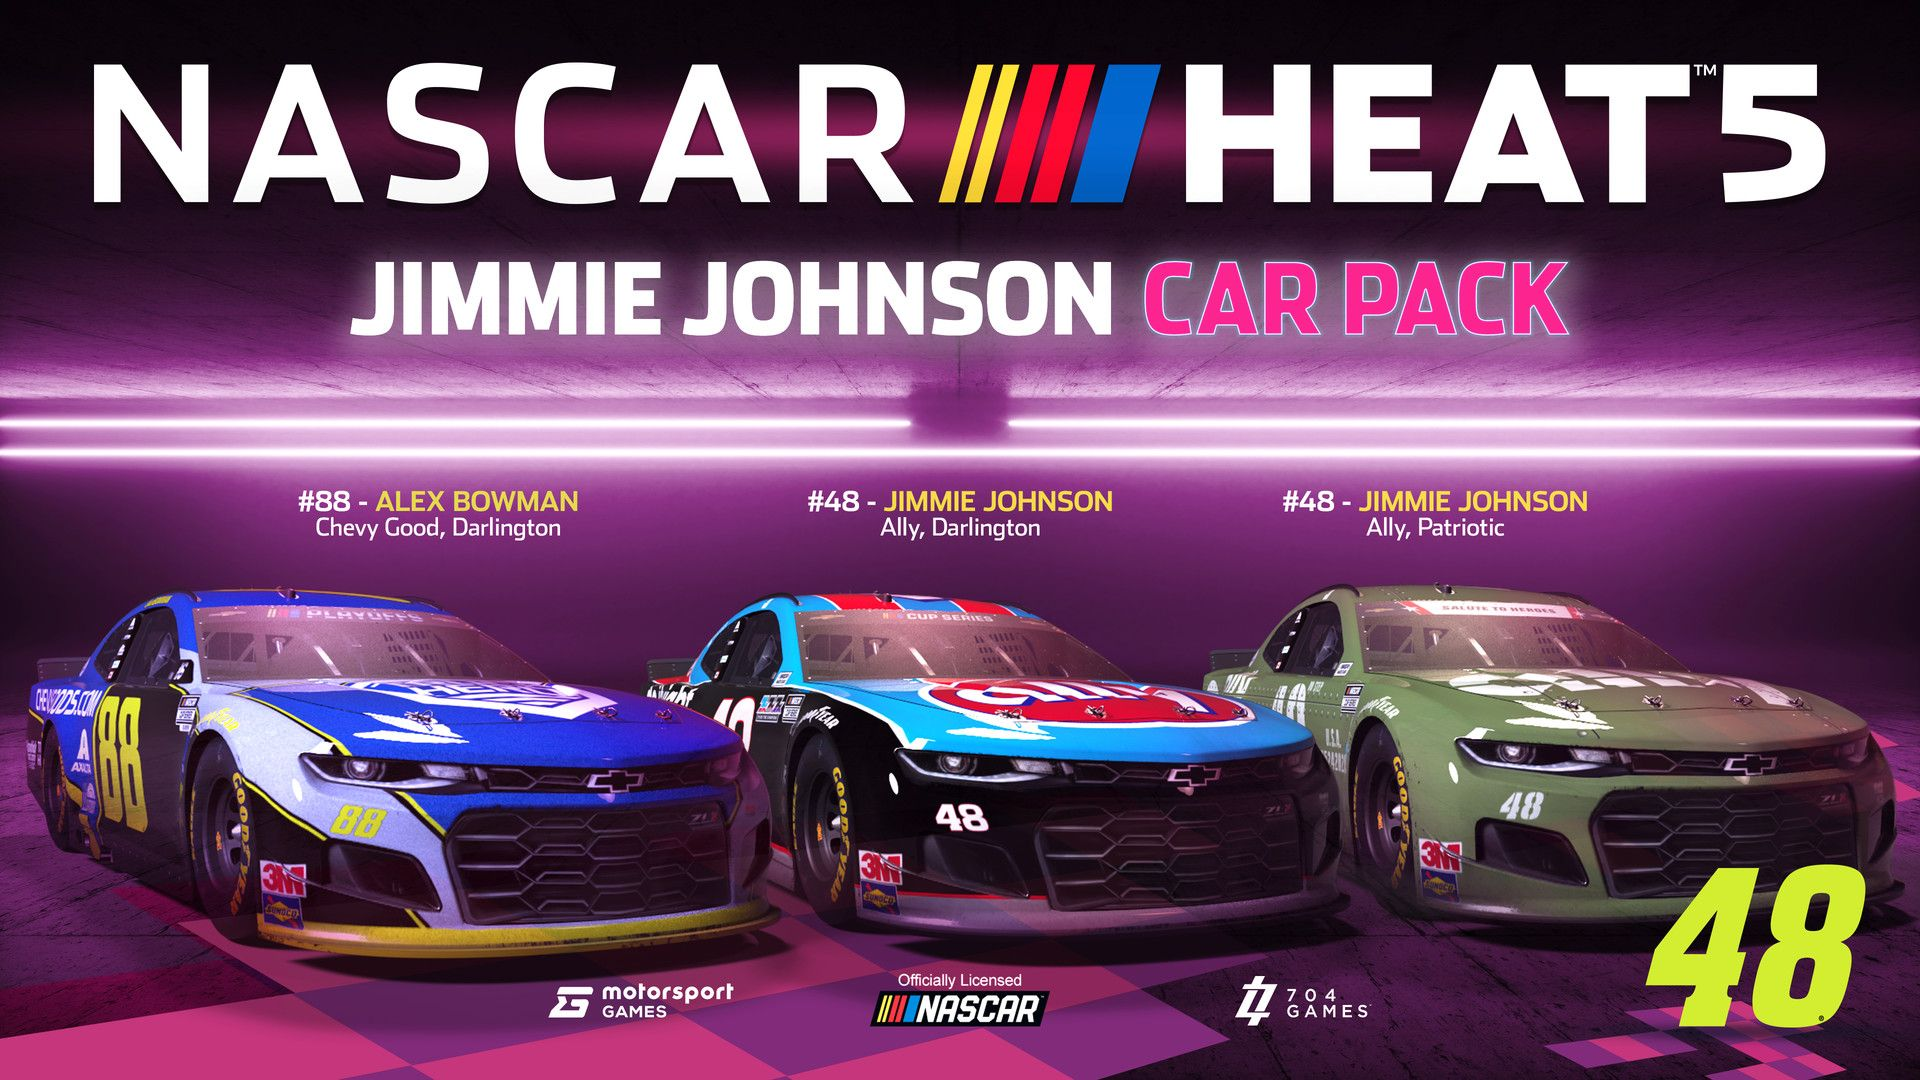 NASCAR Heat 5 - Jimmie Johnson Pack